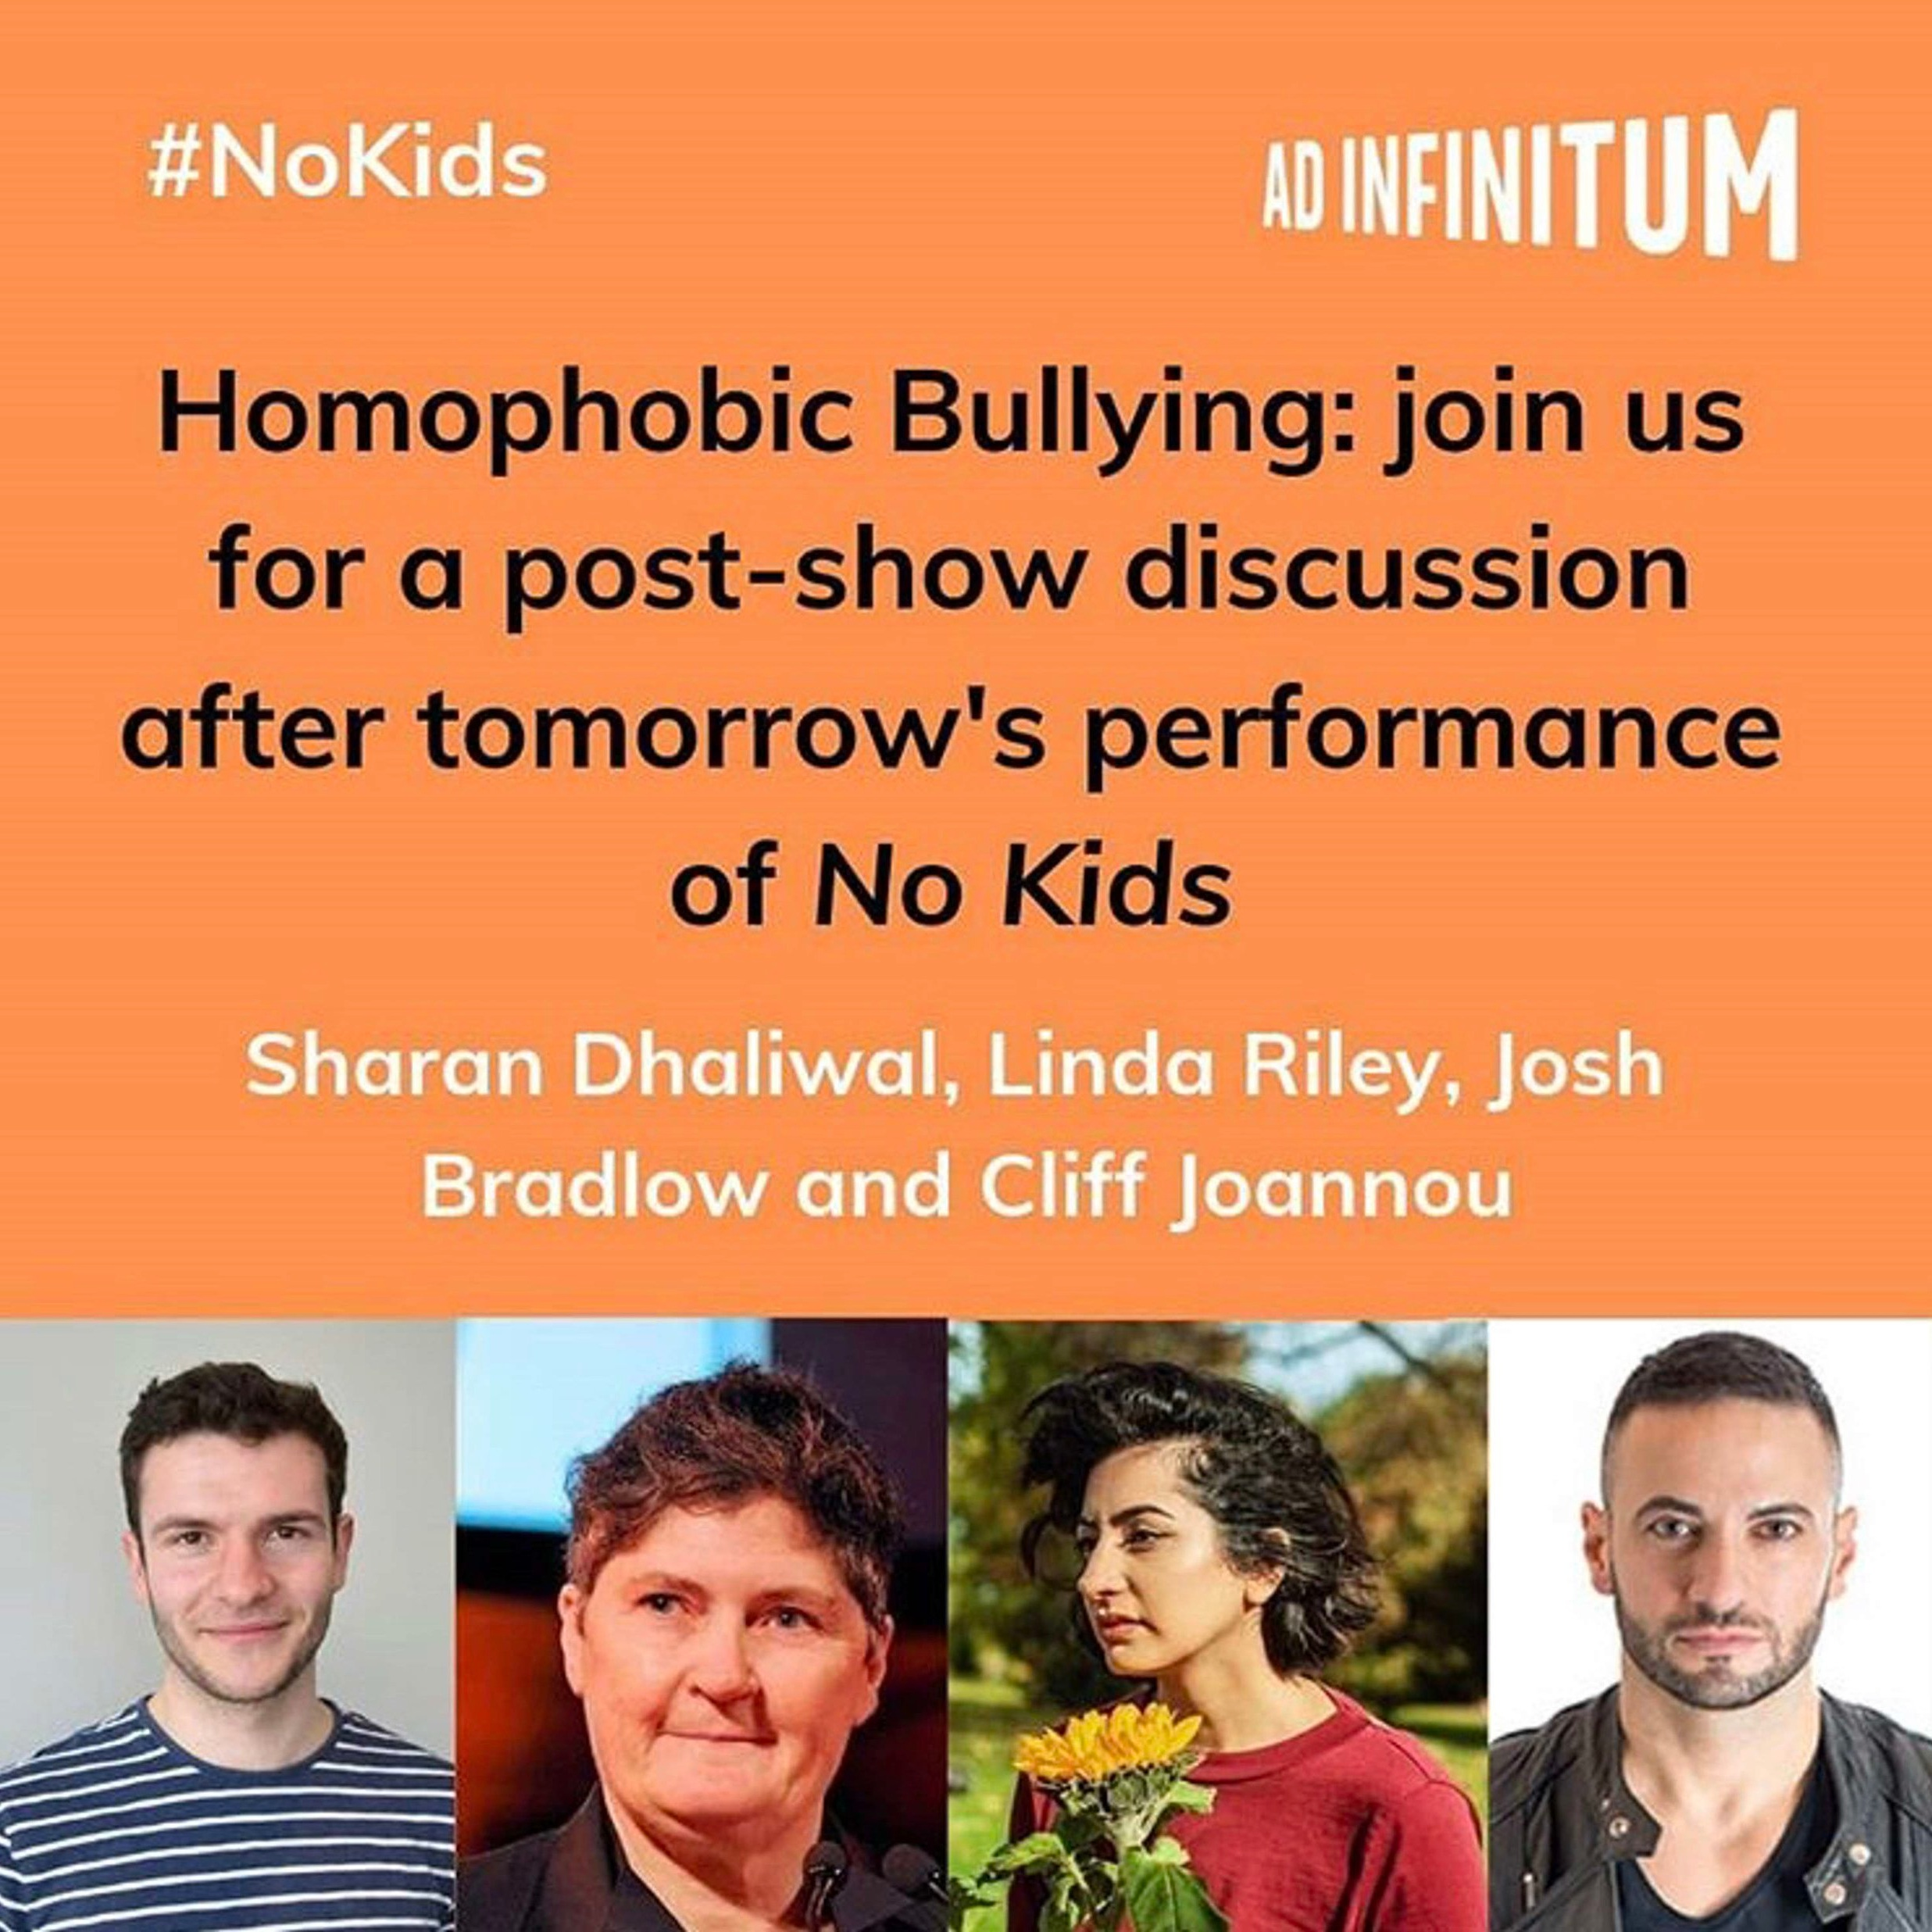 Battersea Arts Centre - Homophobic Bullying - I chaired a panel with Stonewall's Josh Bradlow, Attitude Magazine's Cliff Joannou and Diva Magazine's Linda Riley - talking about homophobic bullying in schools, with families & online, off the back of Ad Inifinitum's play 'No Kids'.